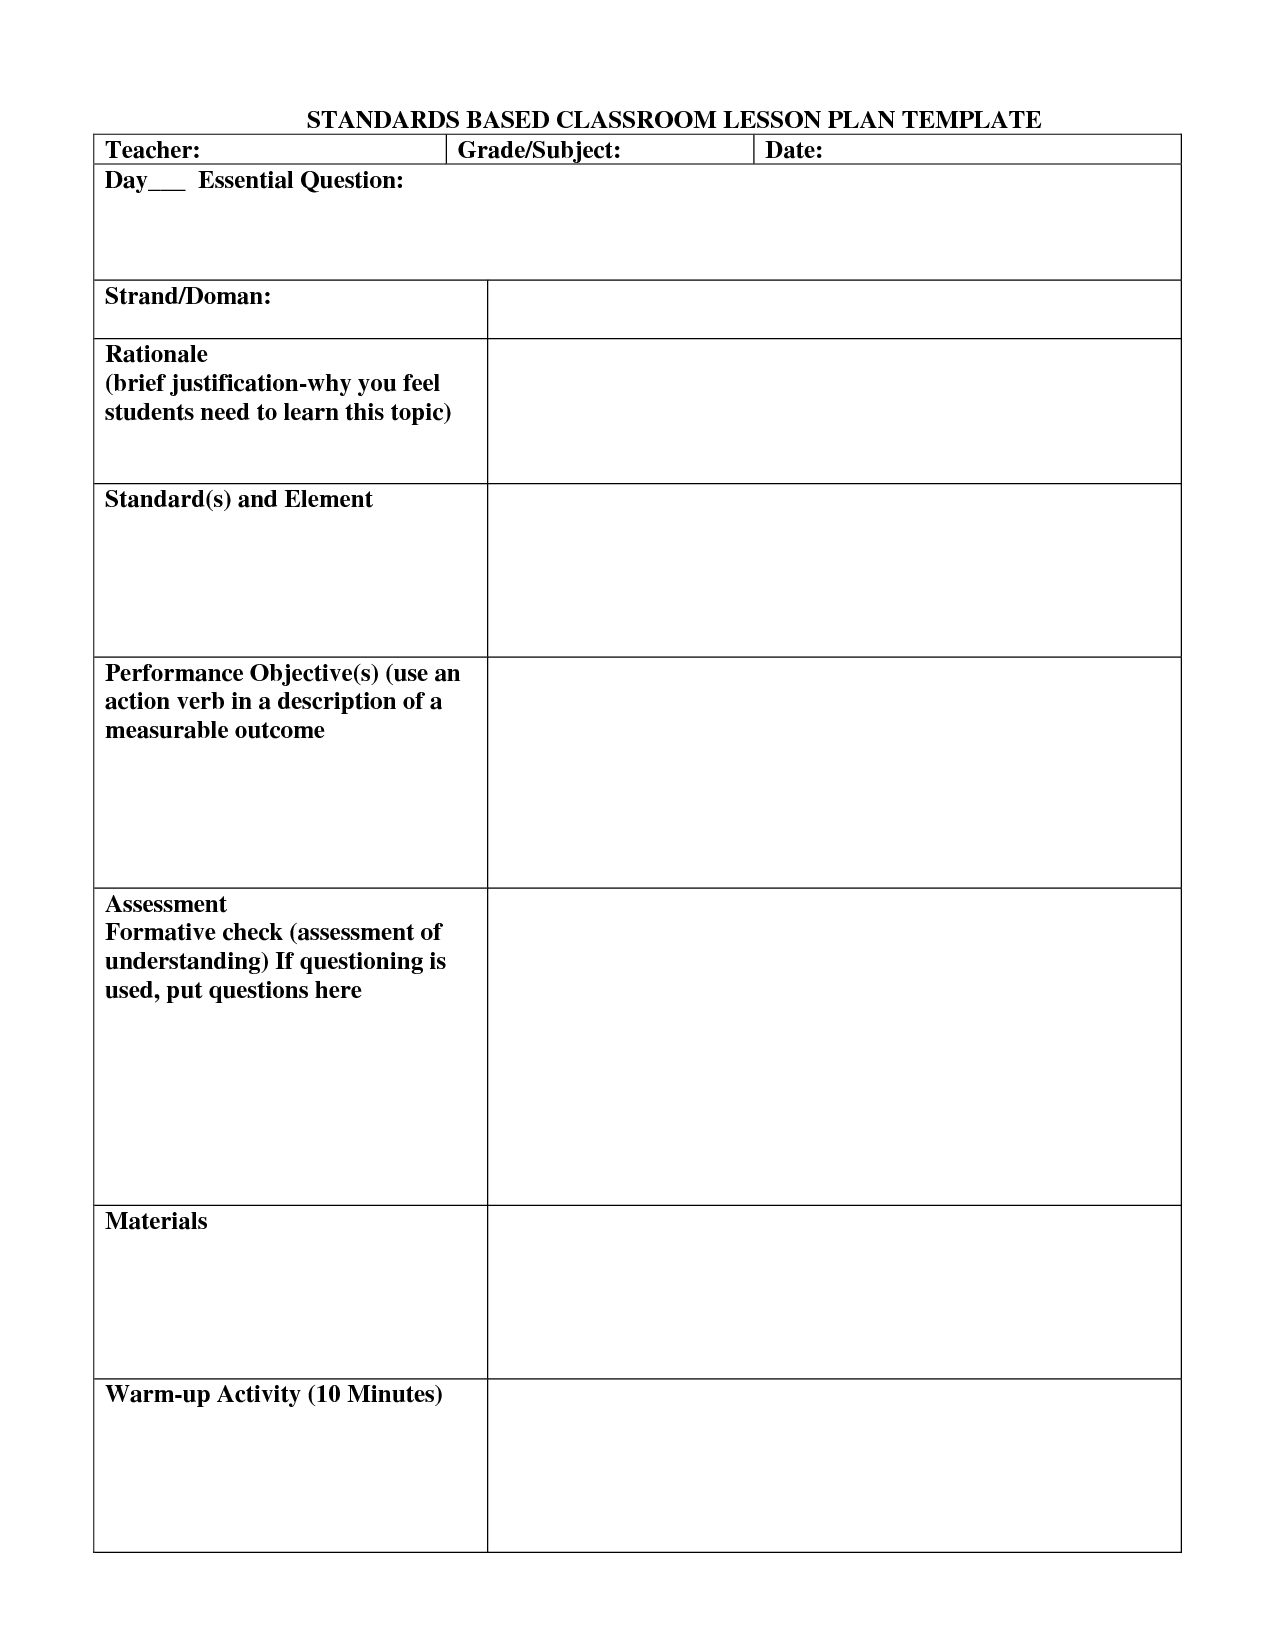 6 point lesson plan template - standard based lesson plans template standards based